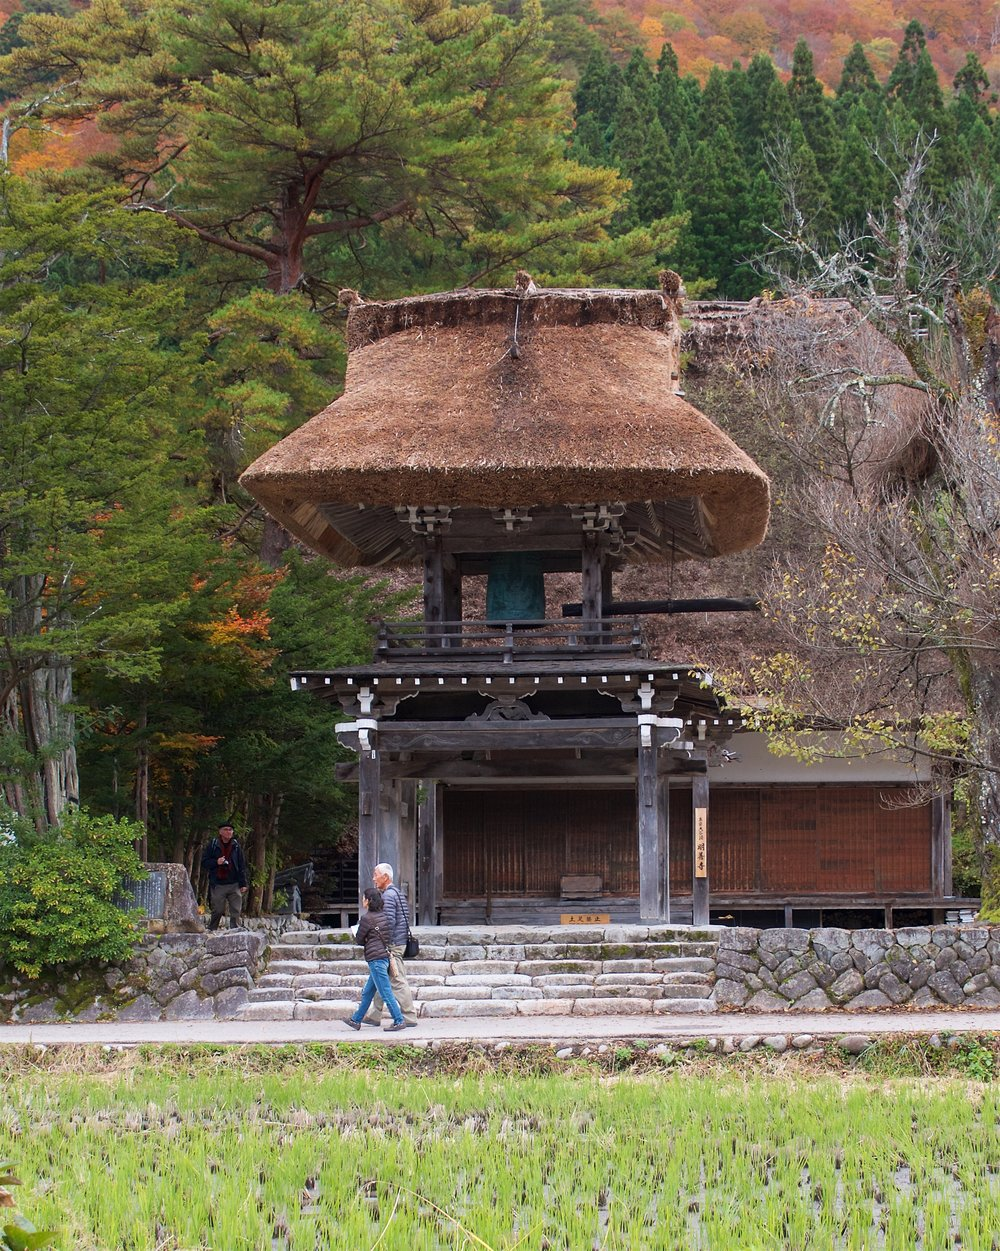 Miyozenji Temple and its gate with a thatched roof